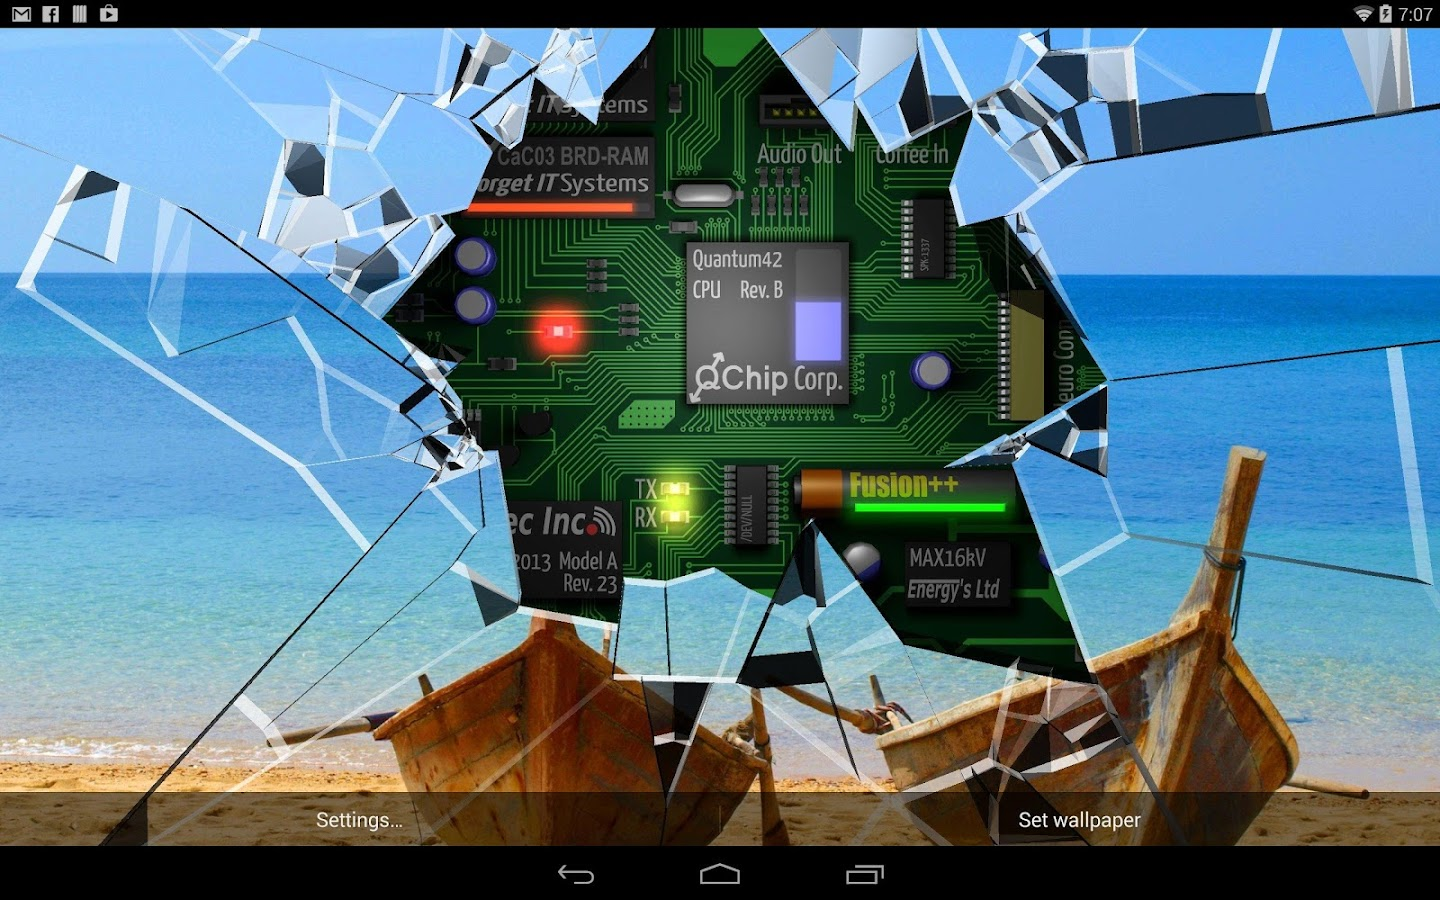 Gyroscope 3d Live Wallpaper Apk Full Cracked Screen 3d Parallax Hd 1 0 5 Apk Download Android